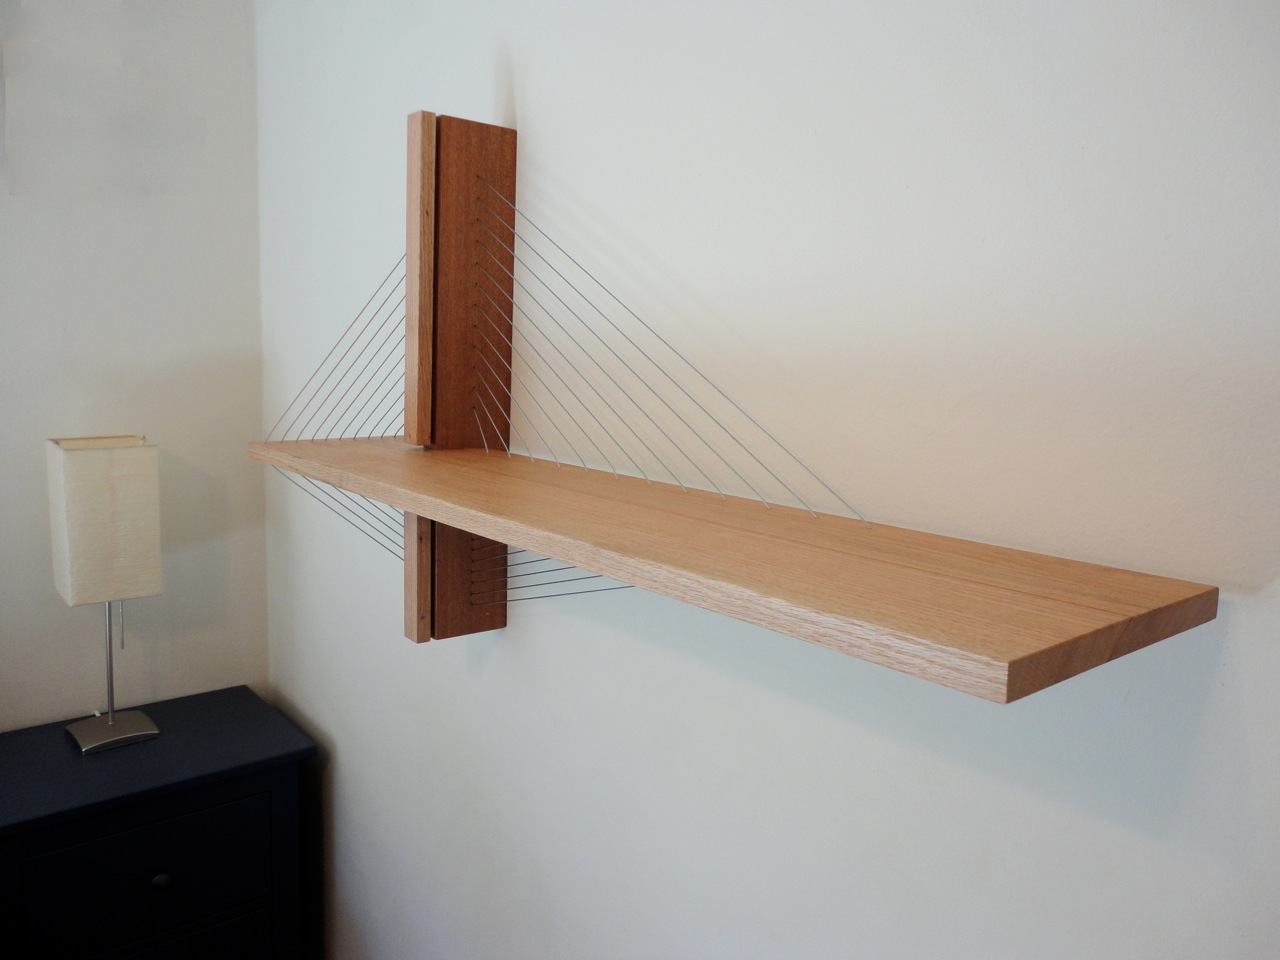 Suspension shelf by robby cuthbert. A modern floating shelf made of wood and steel cable.